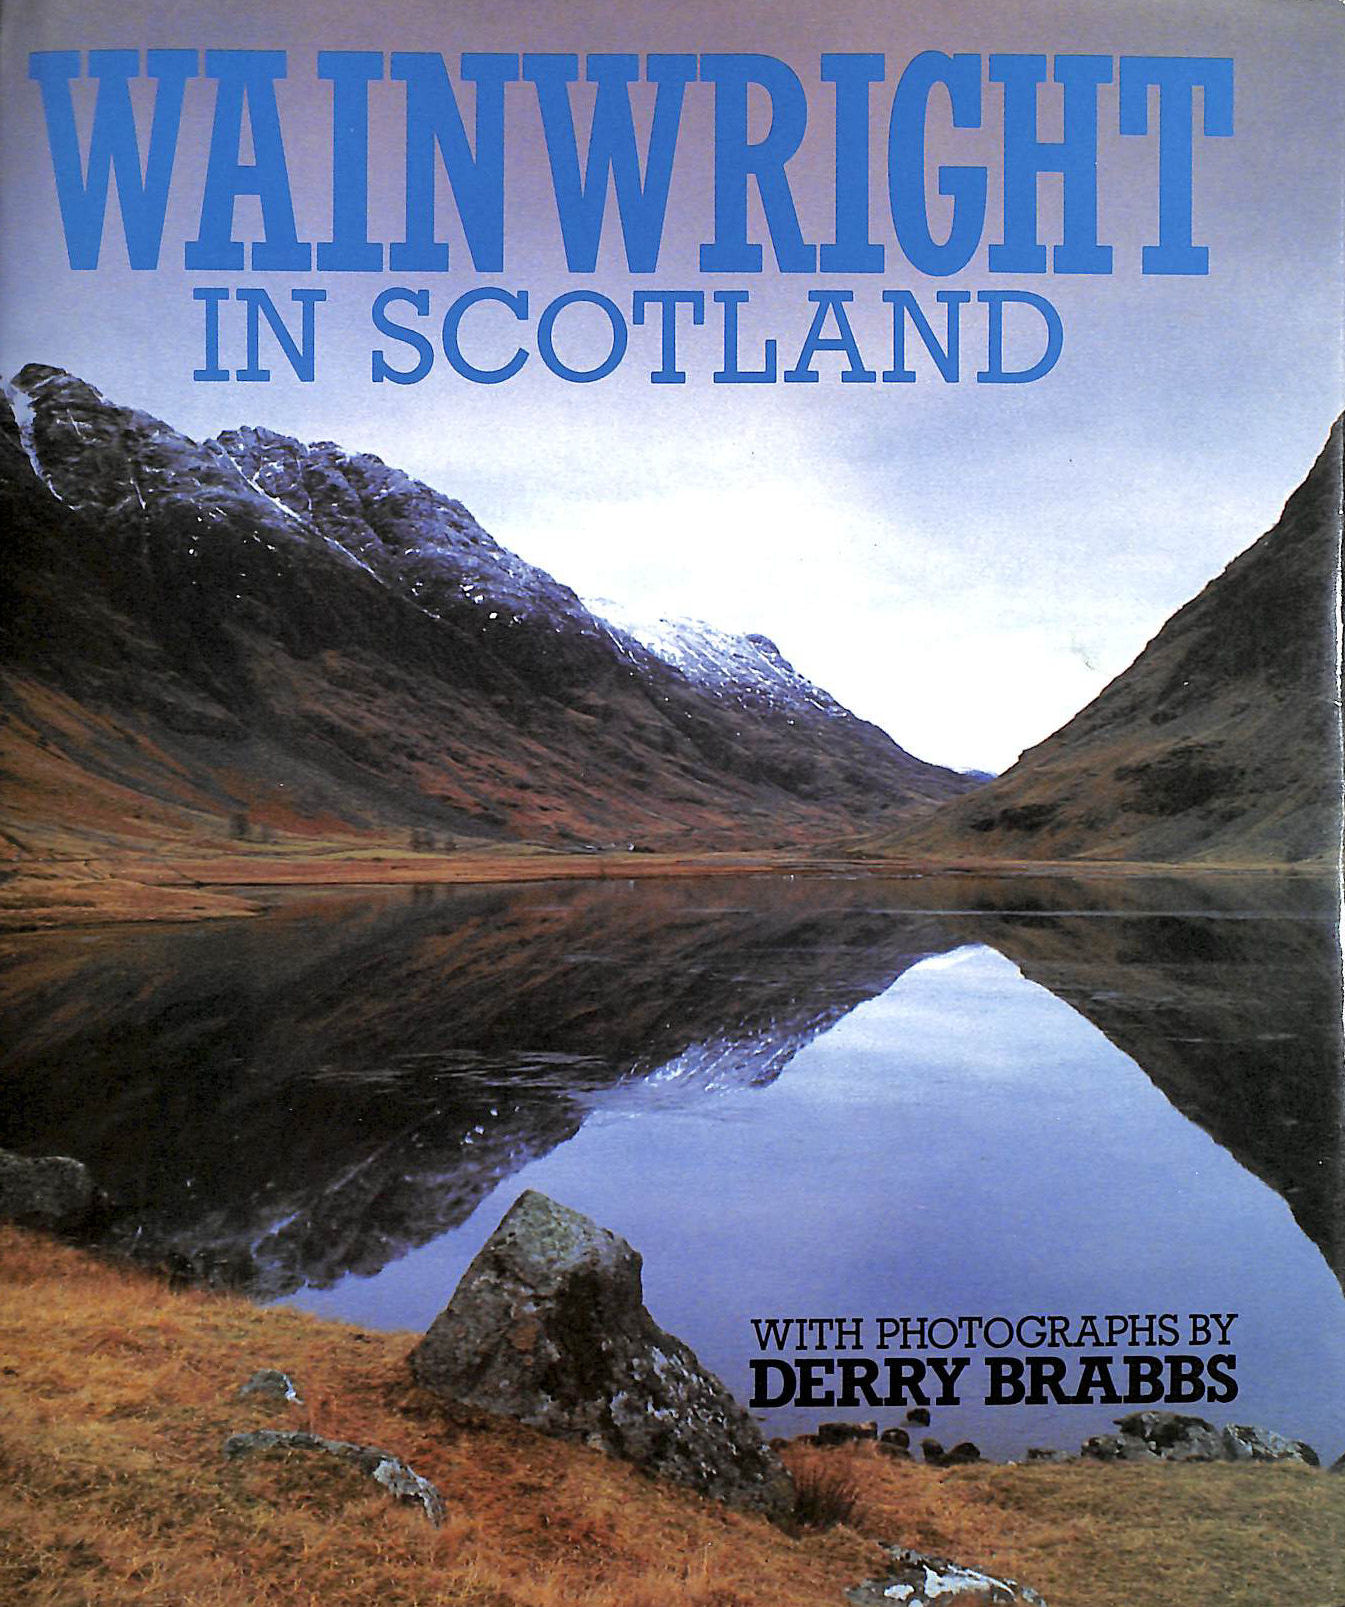 Wainwright in Scotland by Wainwright, Alfred (1988) Hardcover, Derry Brabbs